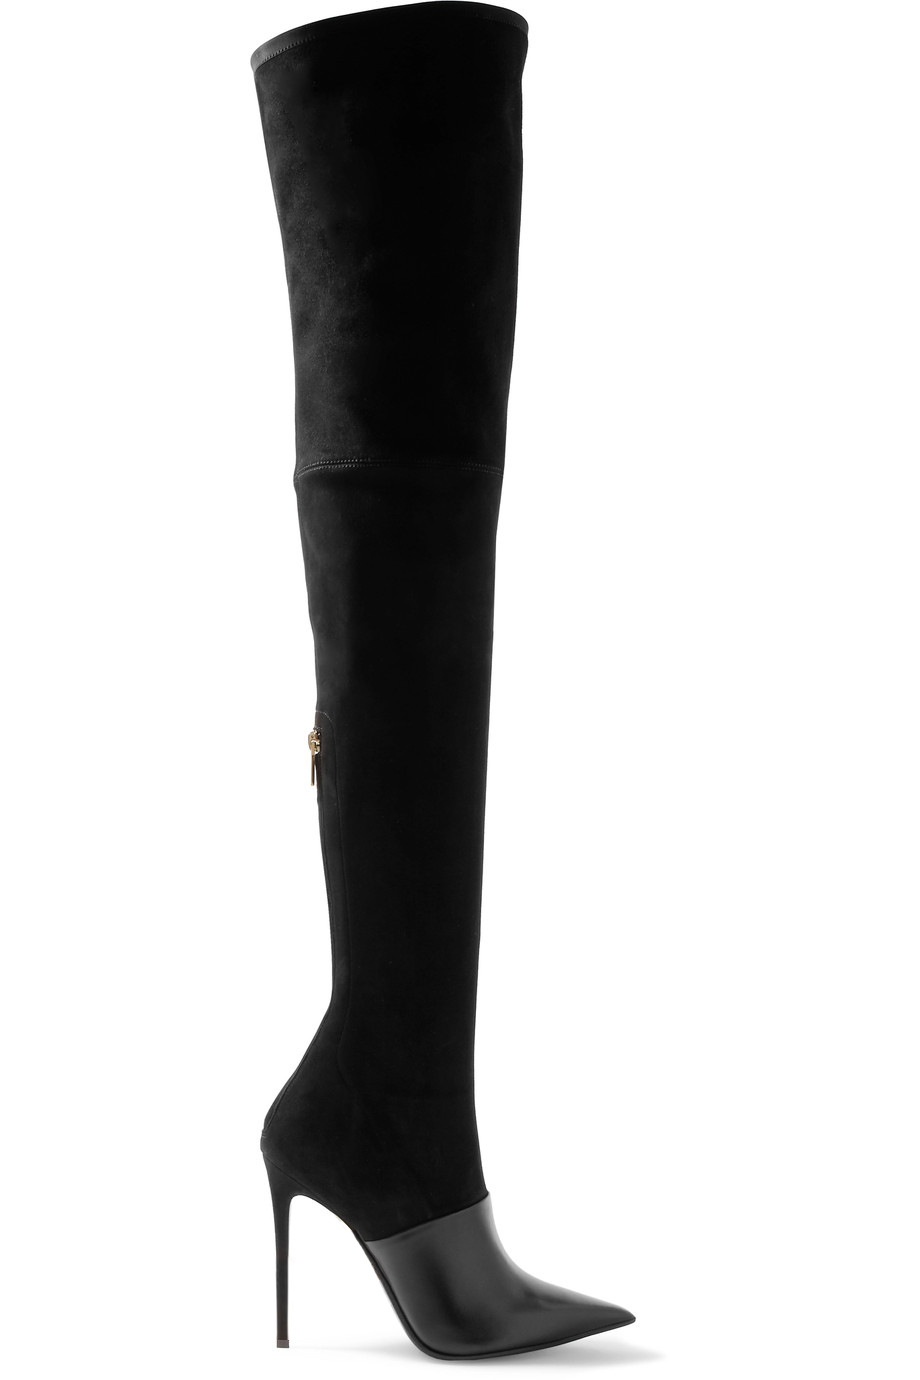 thigh-boots (1)